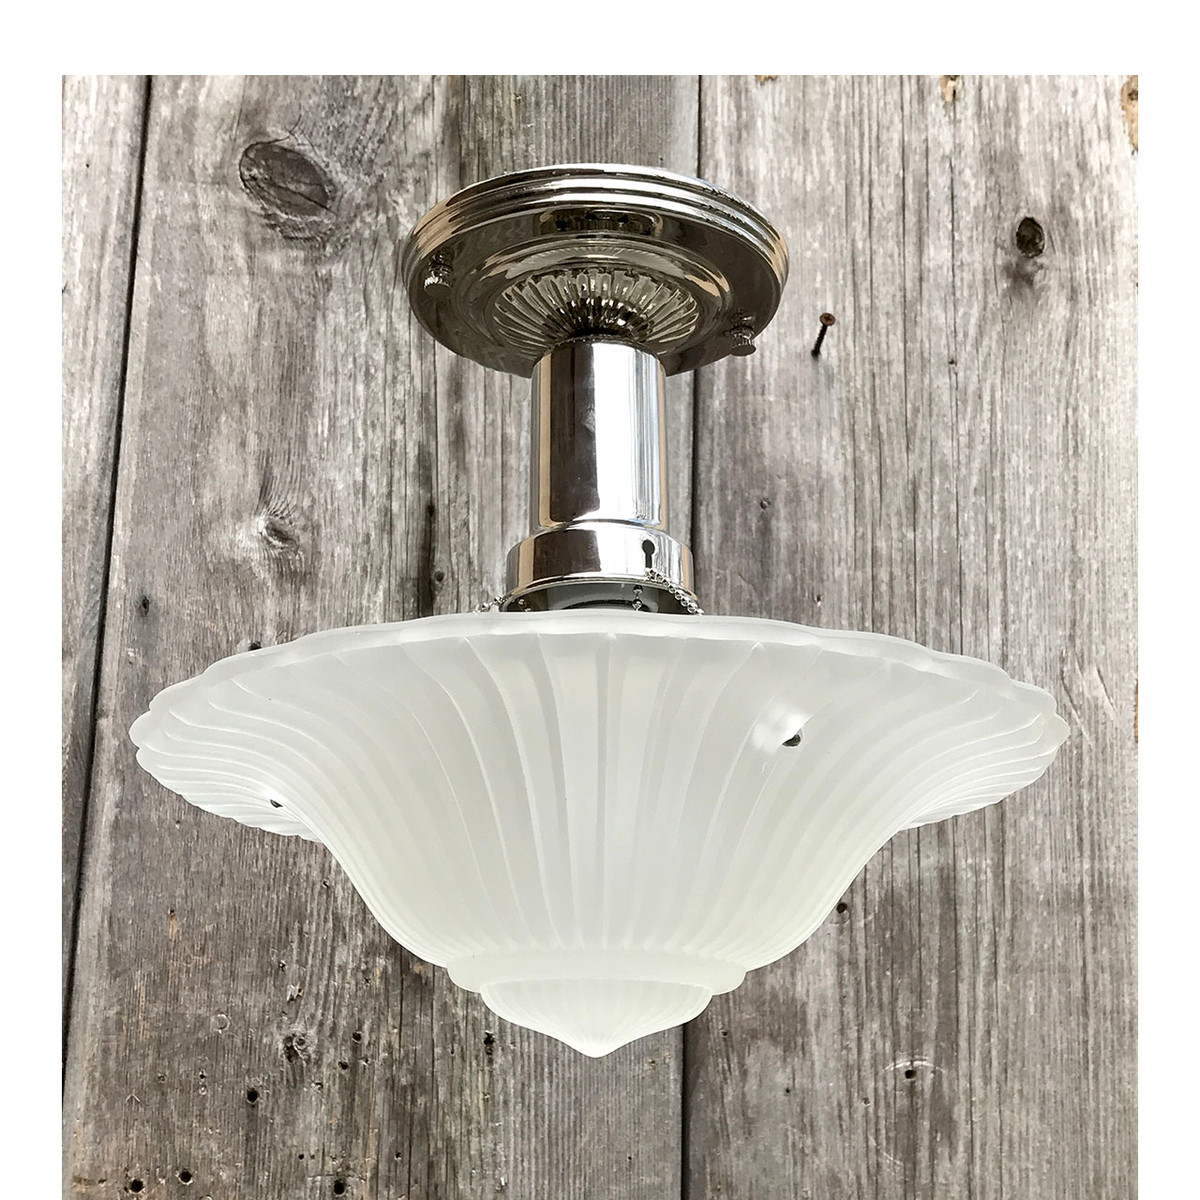 L17071 - Art Moderne Ceiling Light Fixture With Antique Bowl Shade